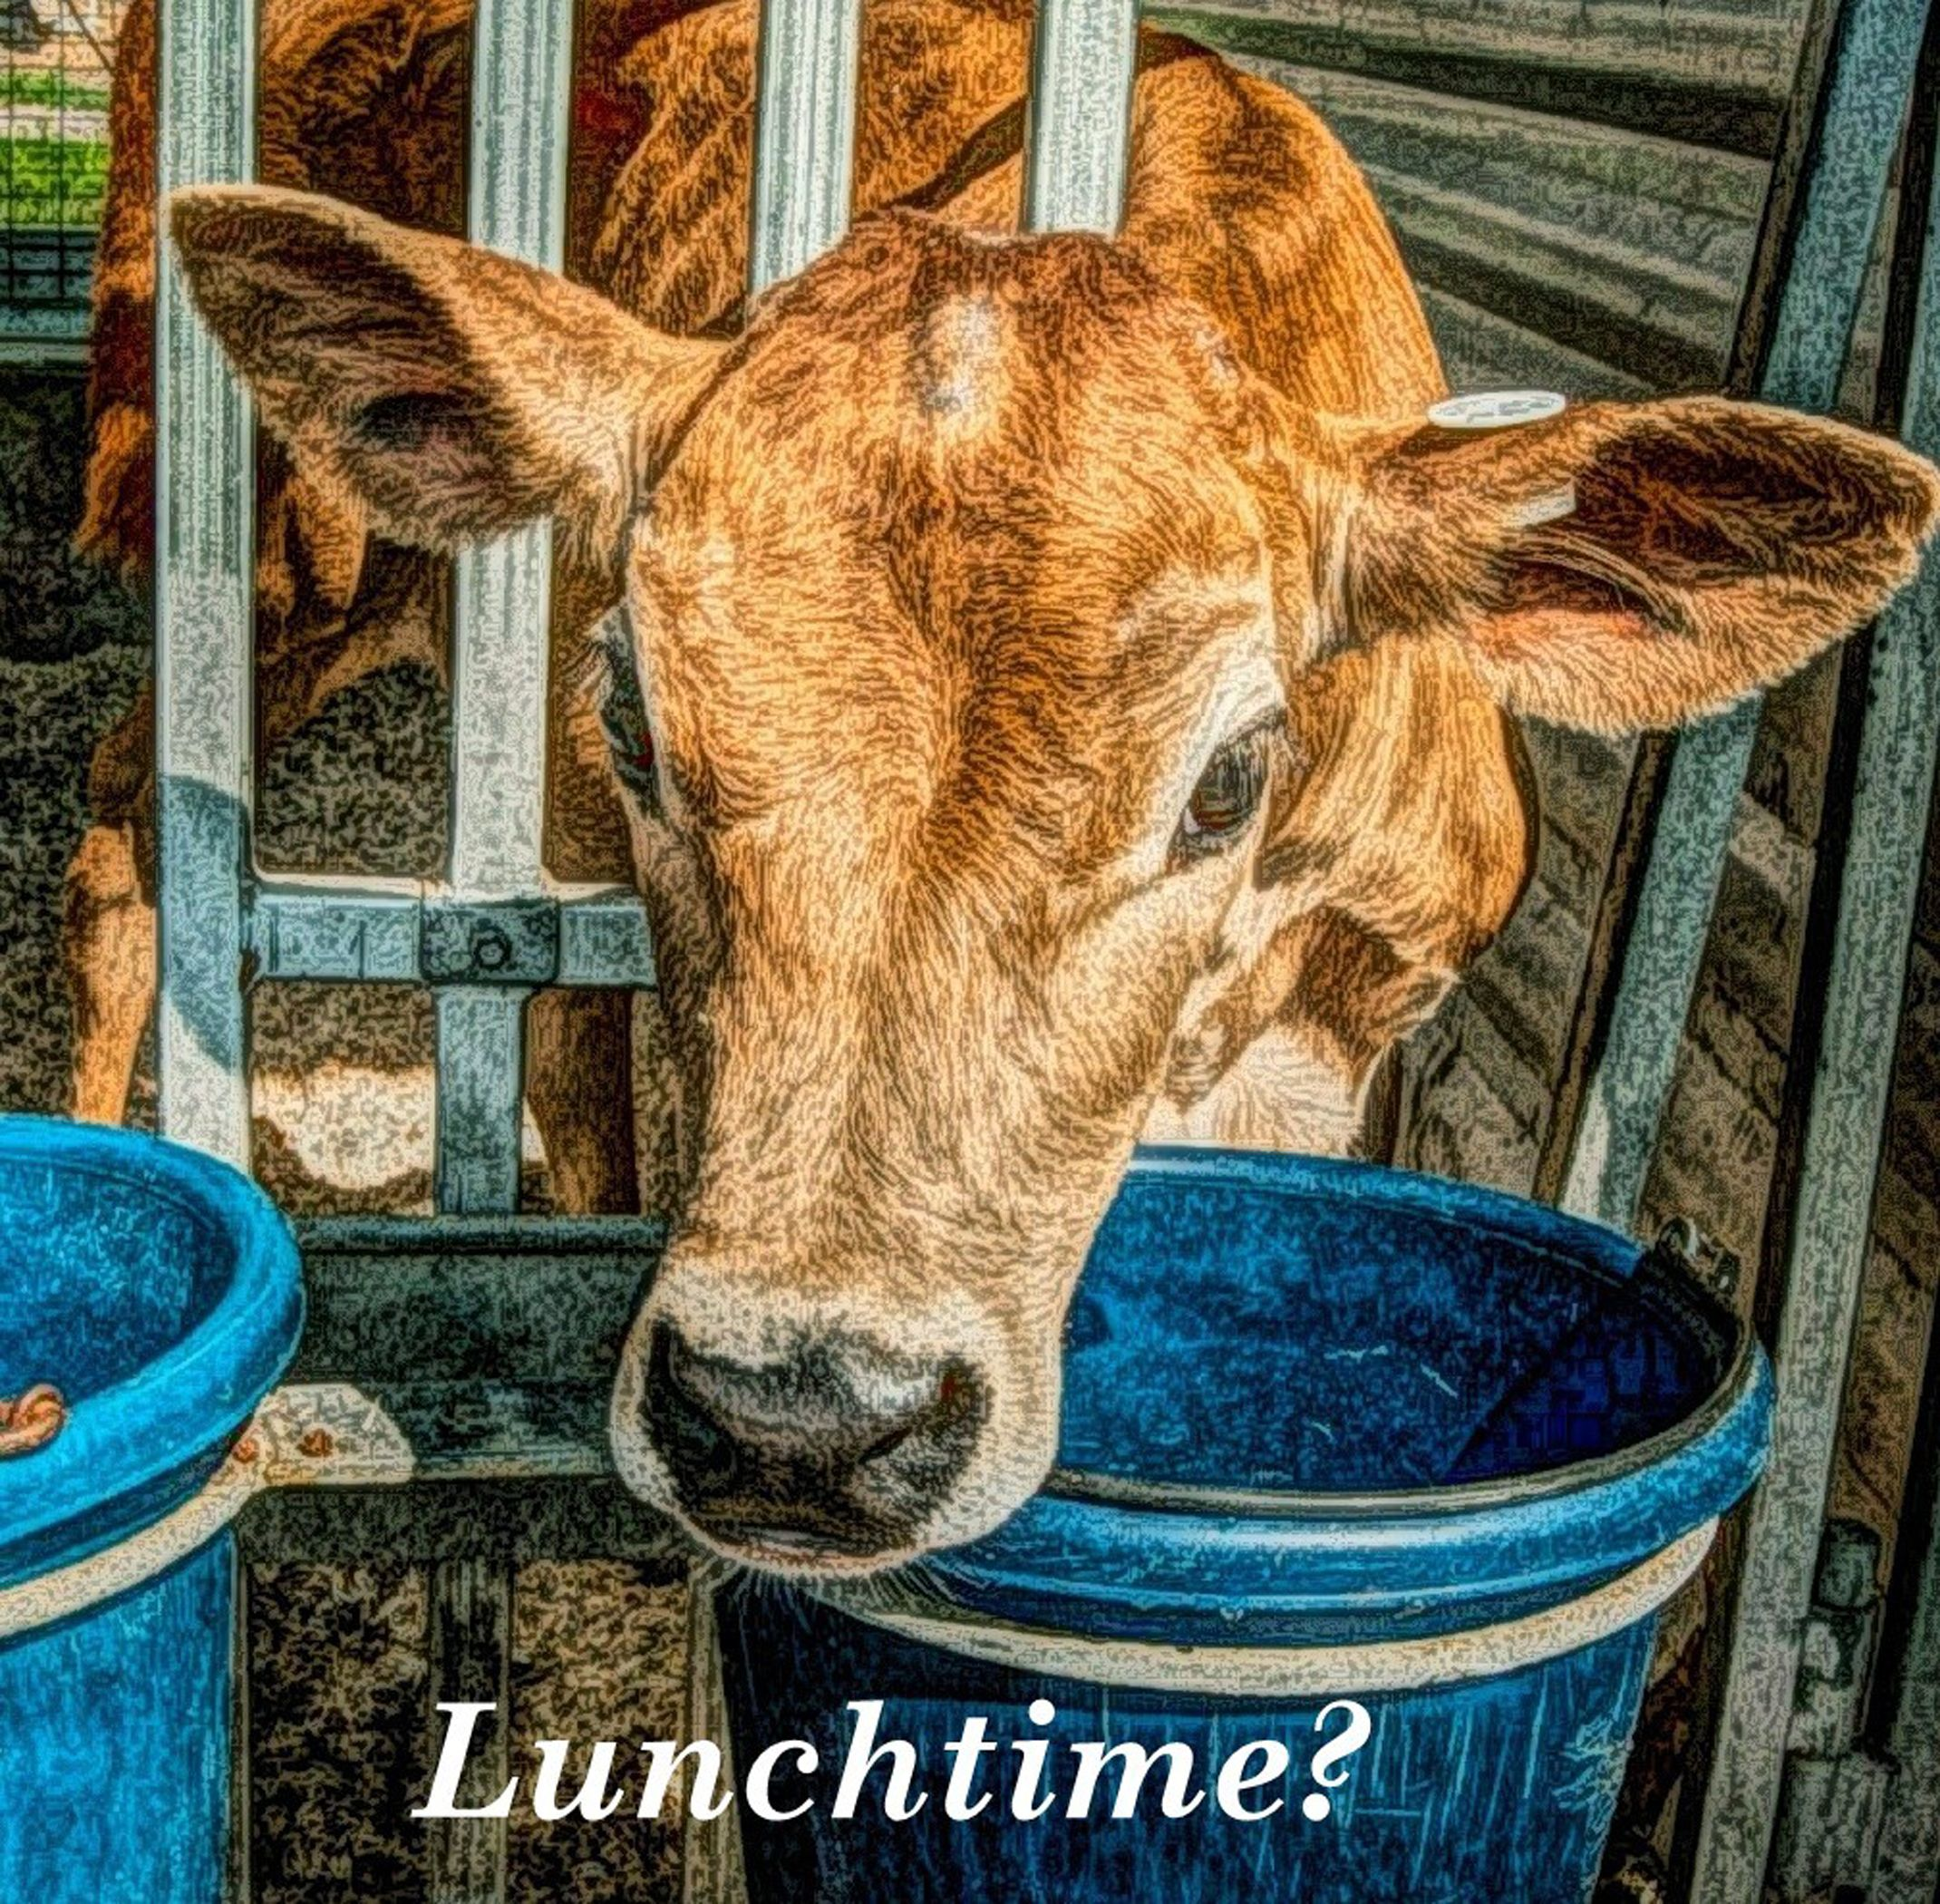 Lunchtime Meme Cow Looking For Grain 300 Dpi